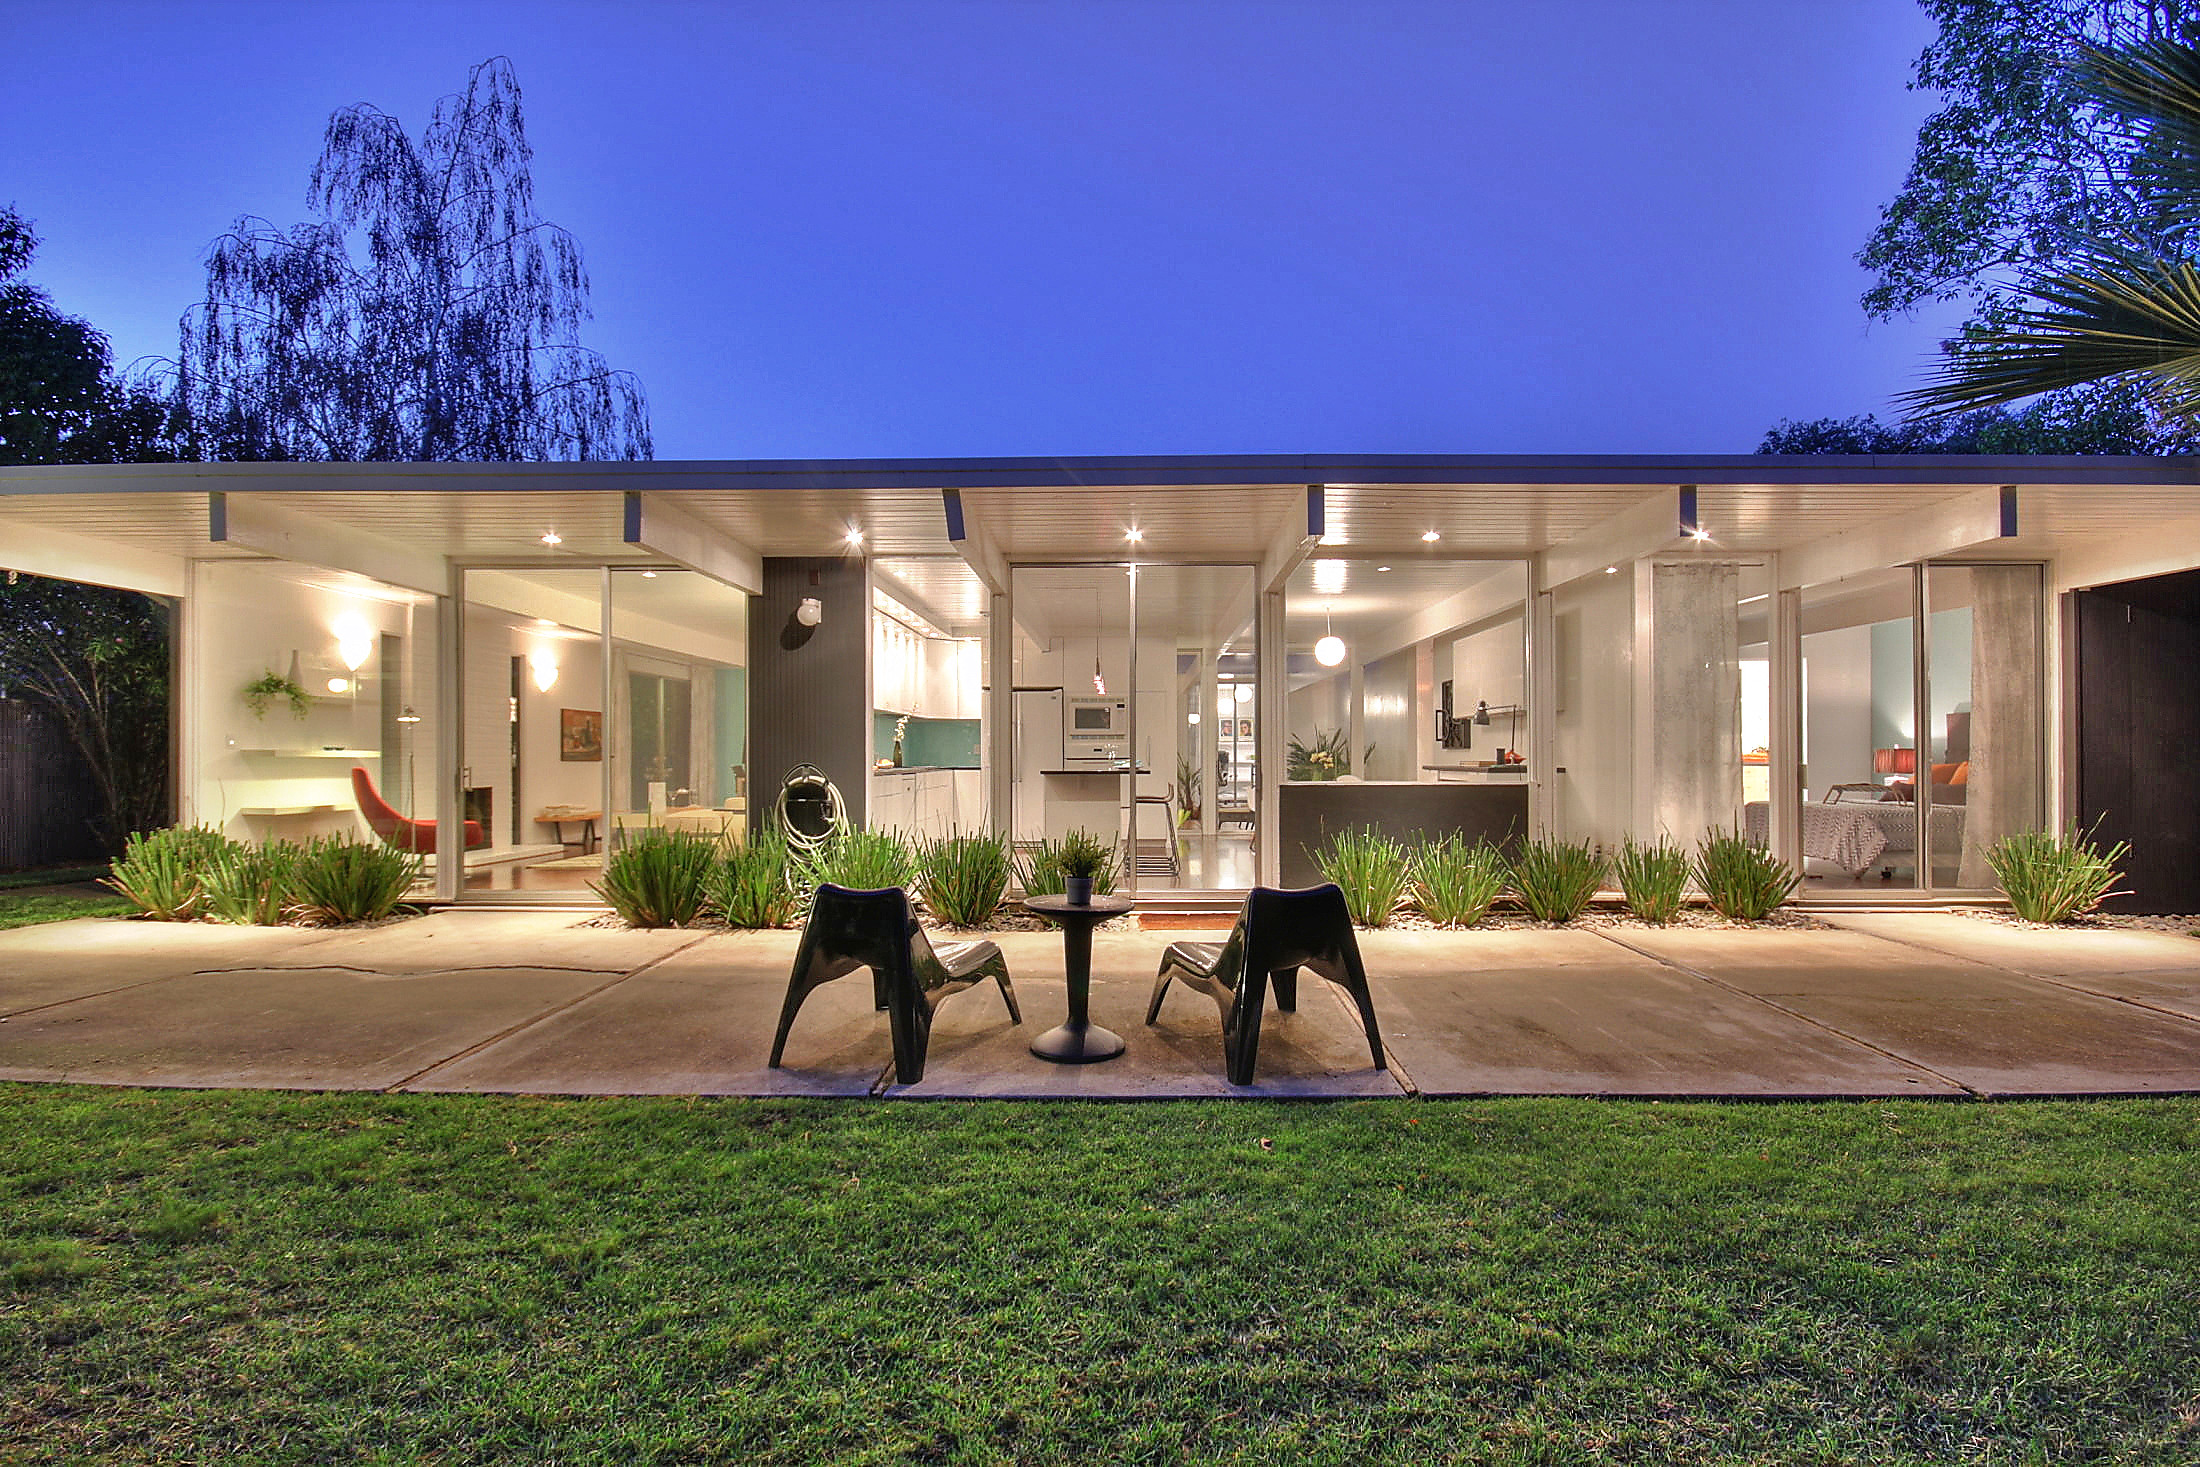 Eichler Homes Pictures eichler homes interior design - home design